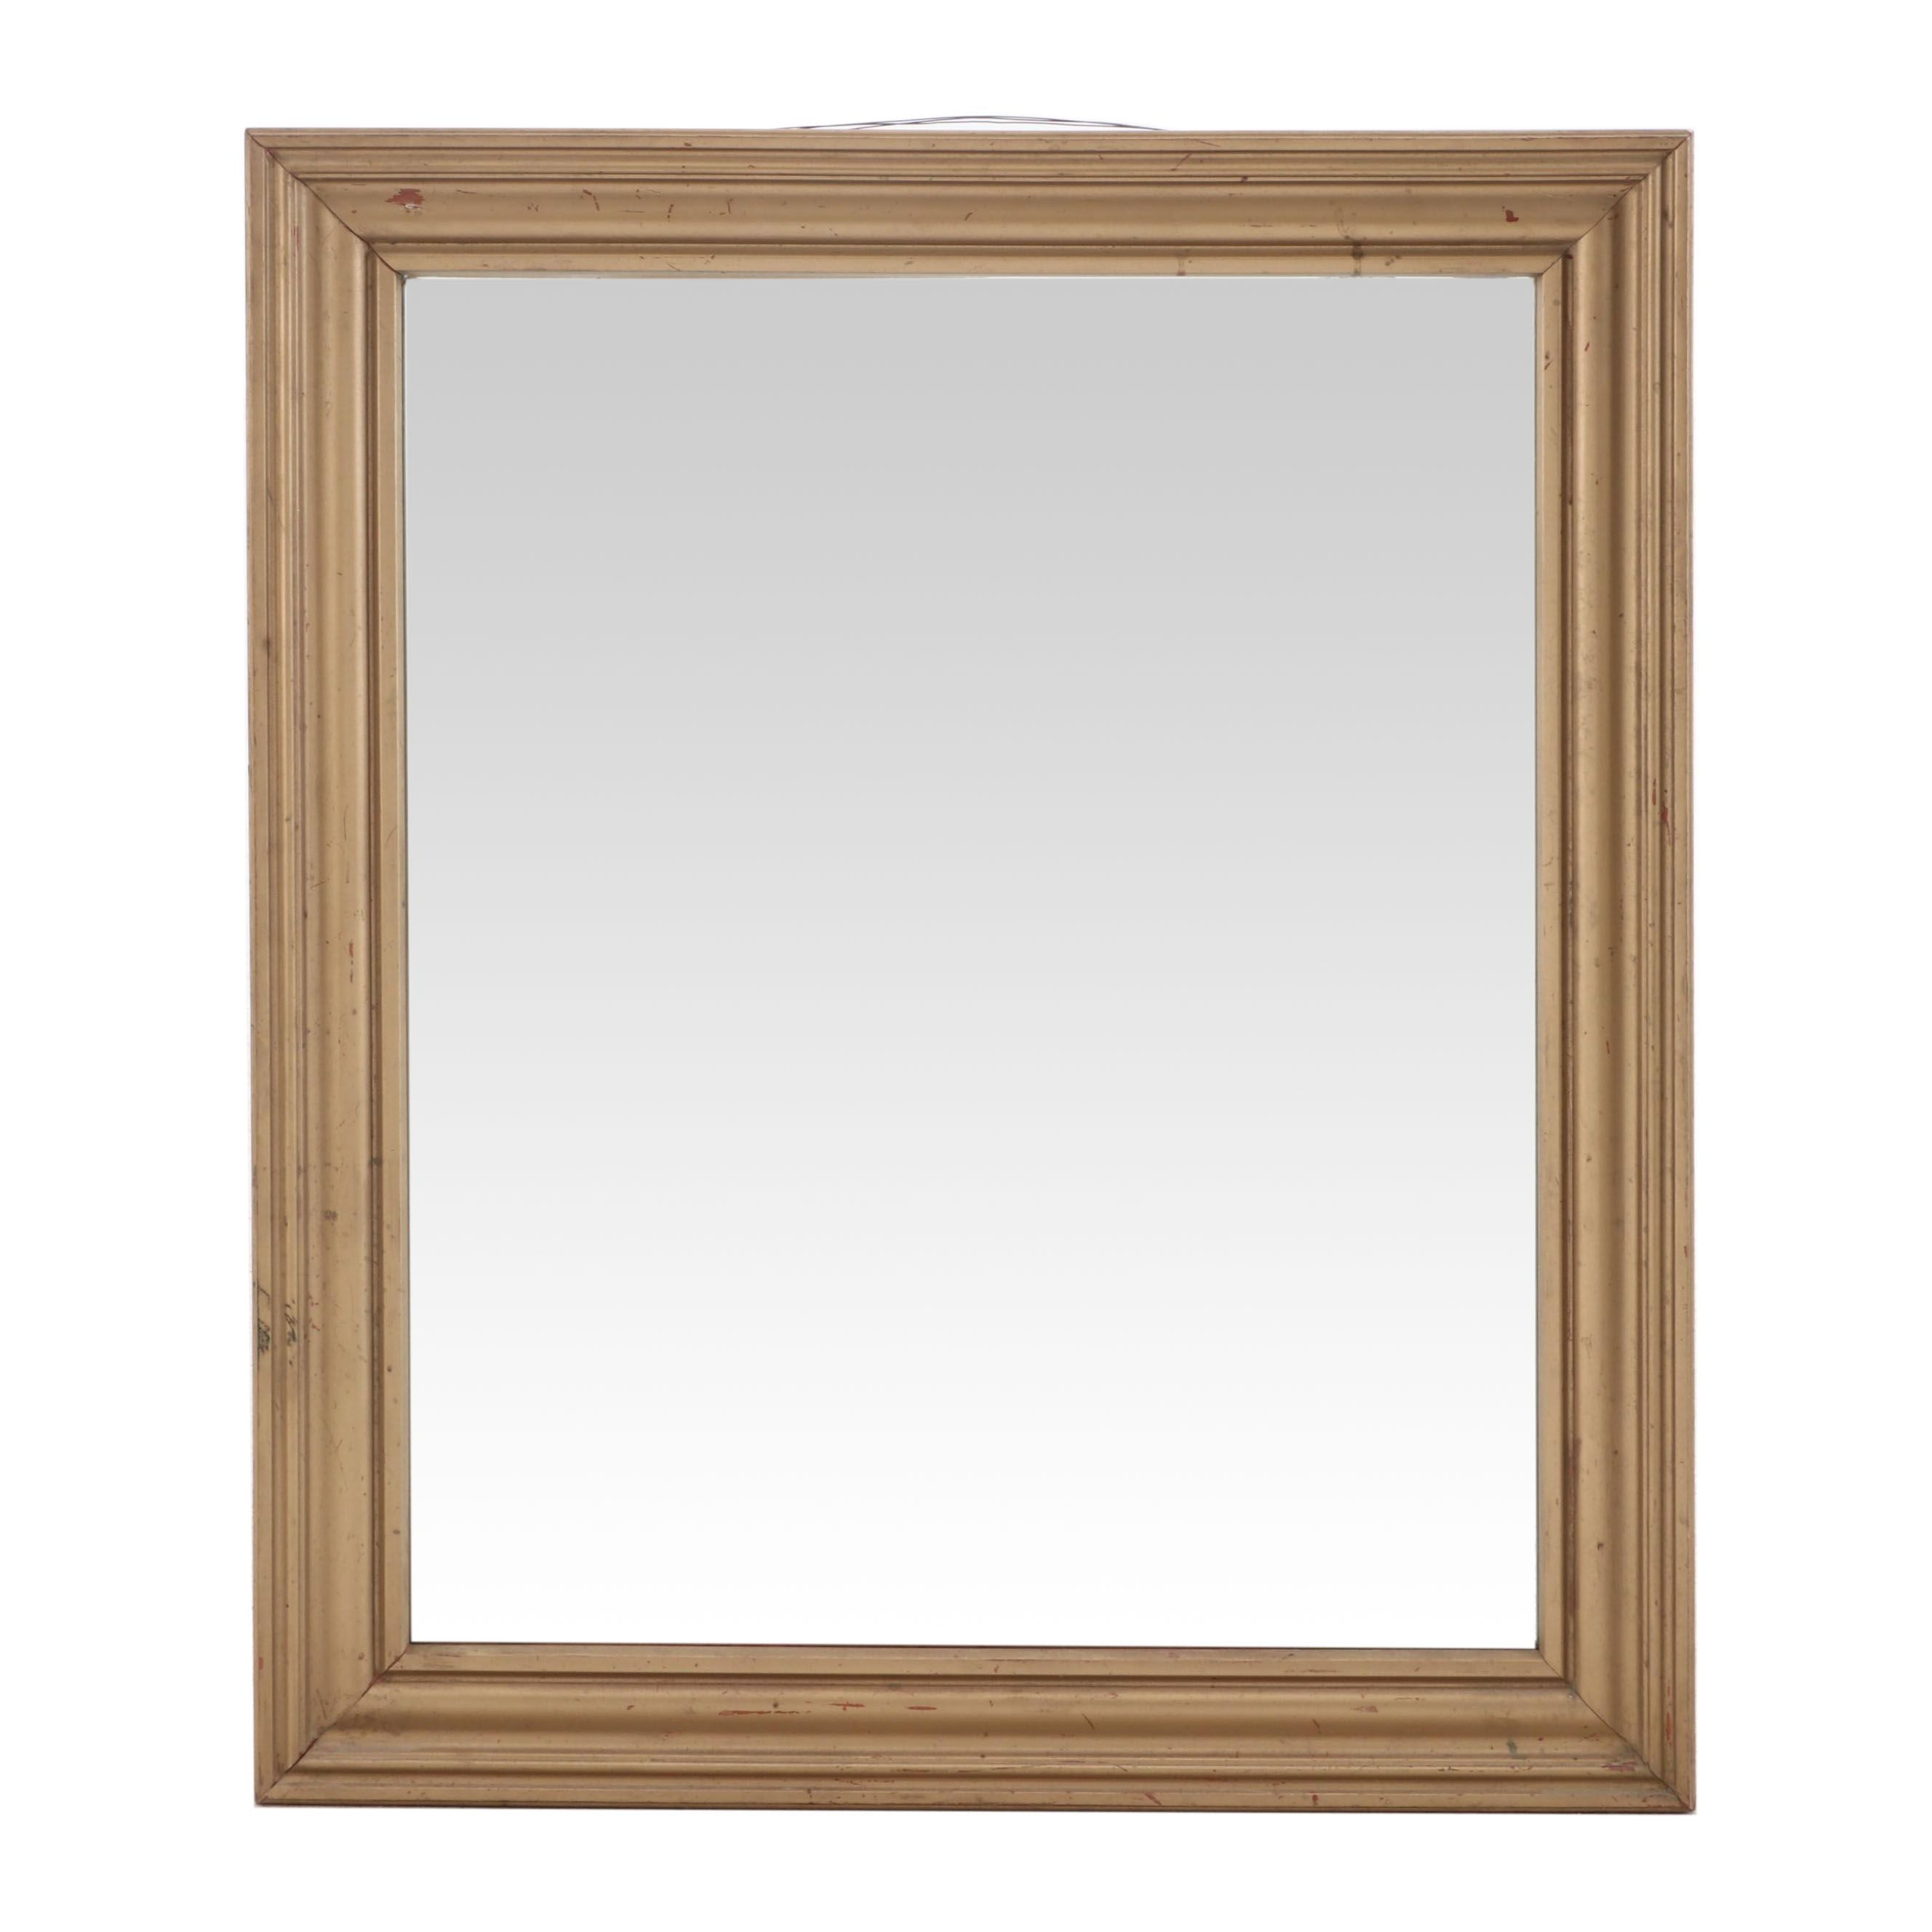 Muted Gold Paint Finish Wall Mirror